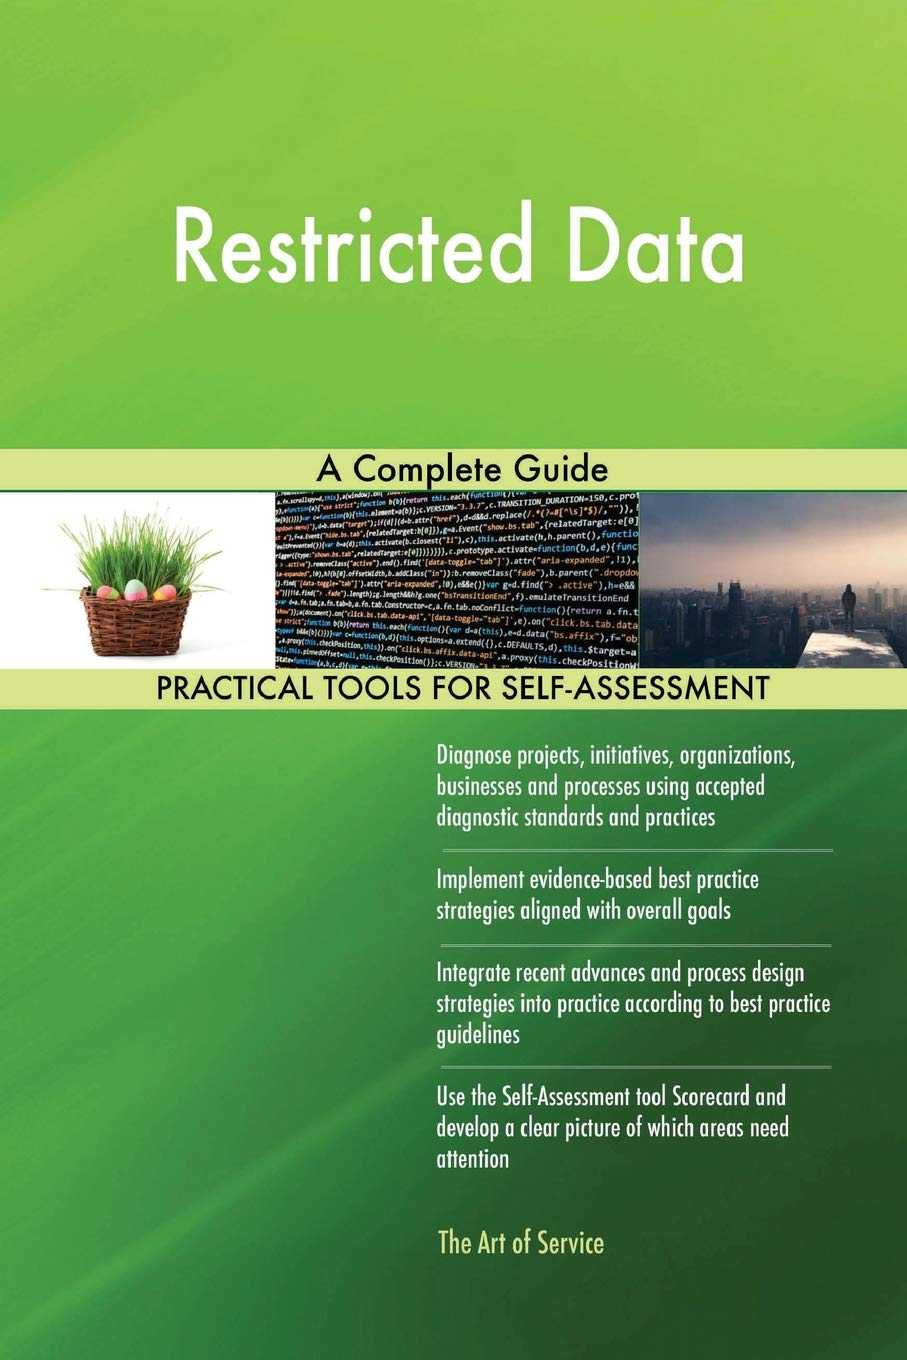 Restricted Data A Complete Guide: Gerardus Blokdyk